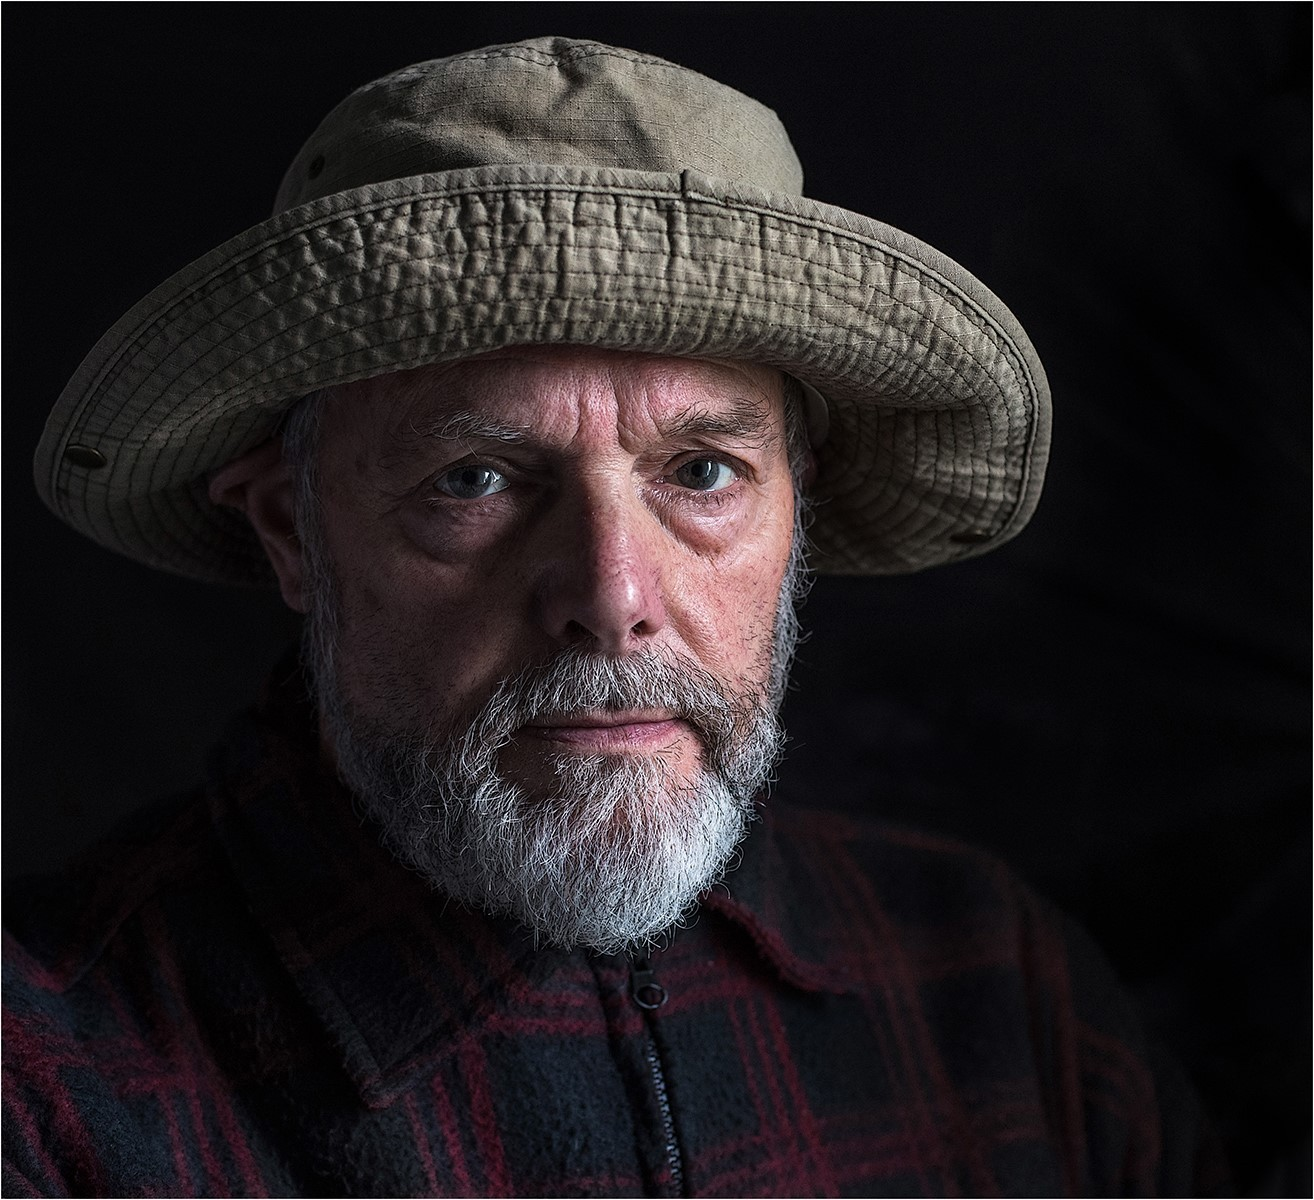 Portrait of Bill with hat